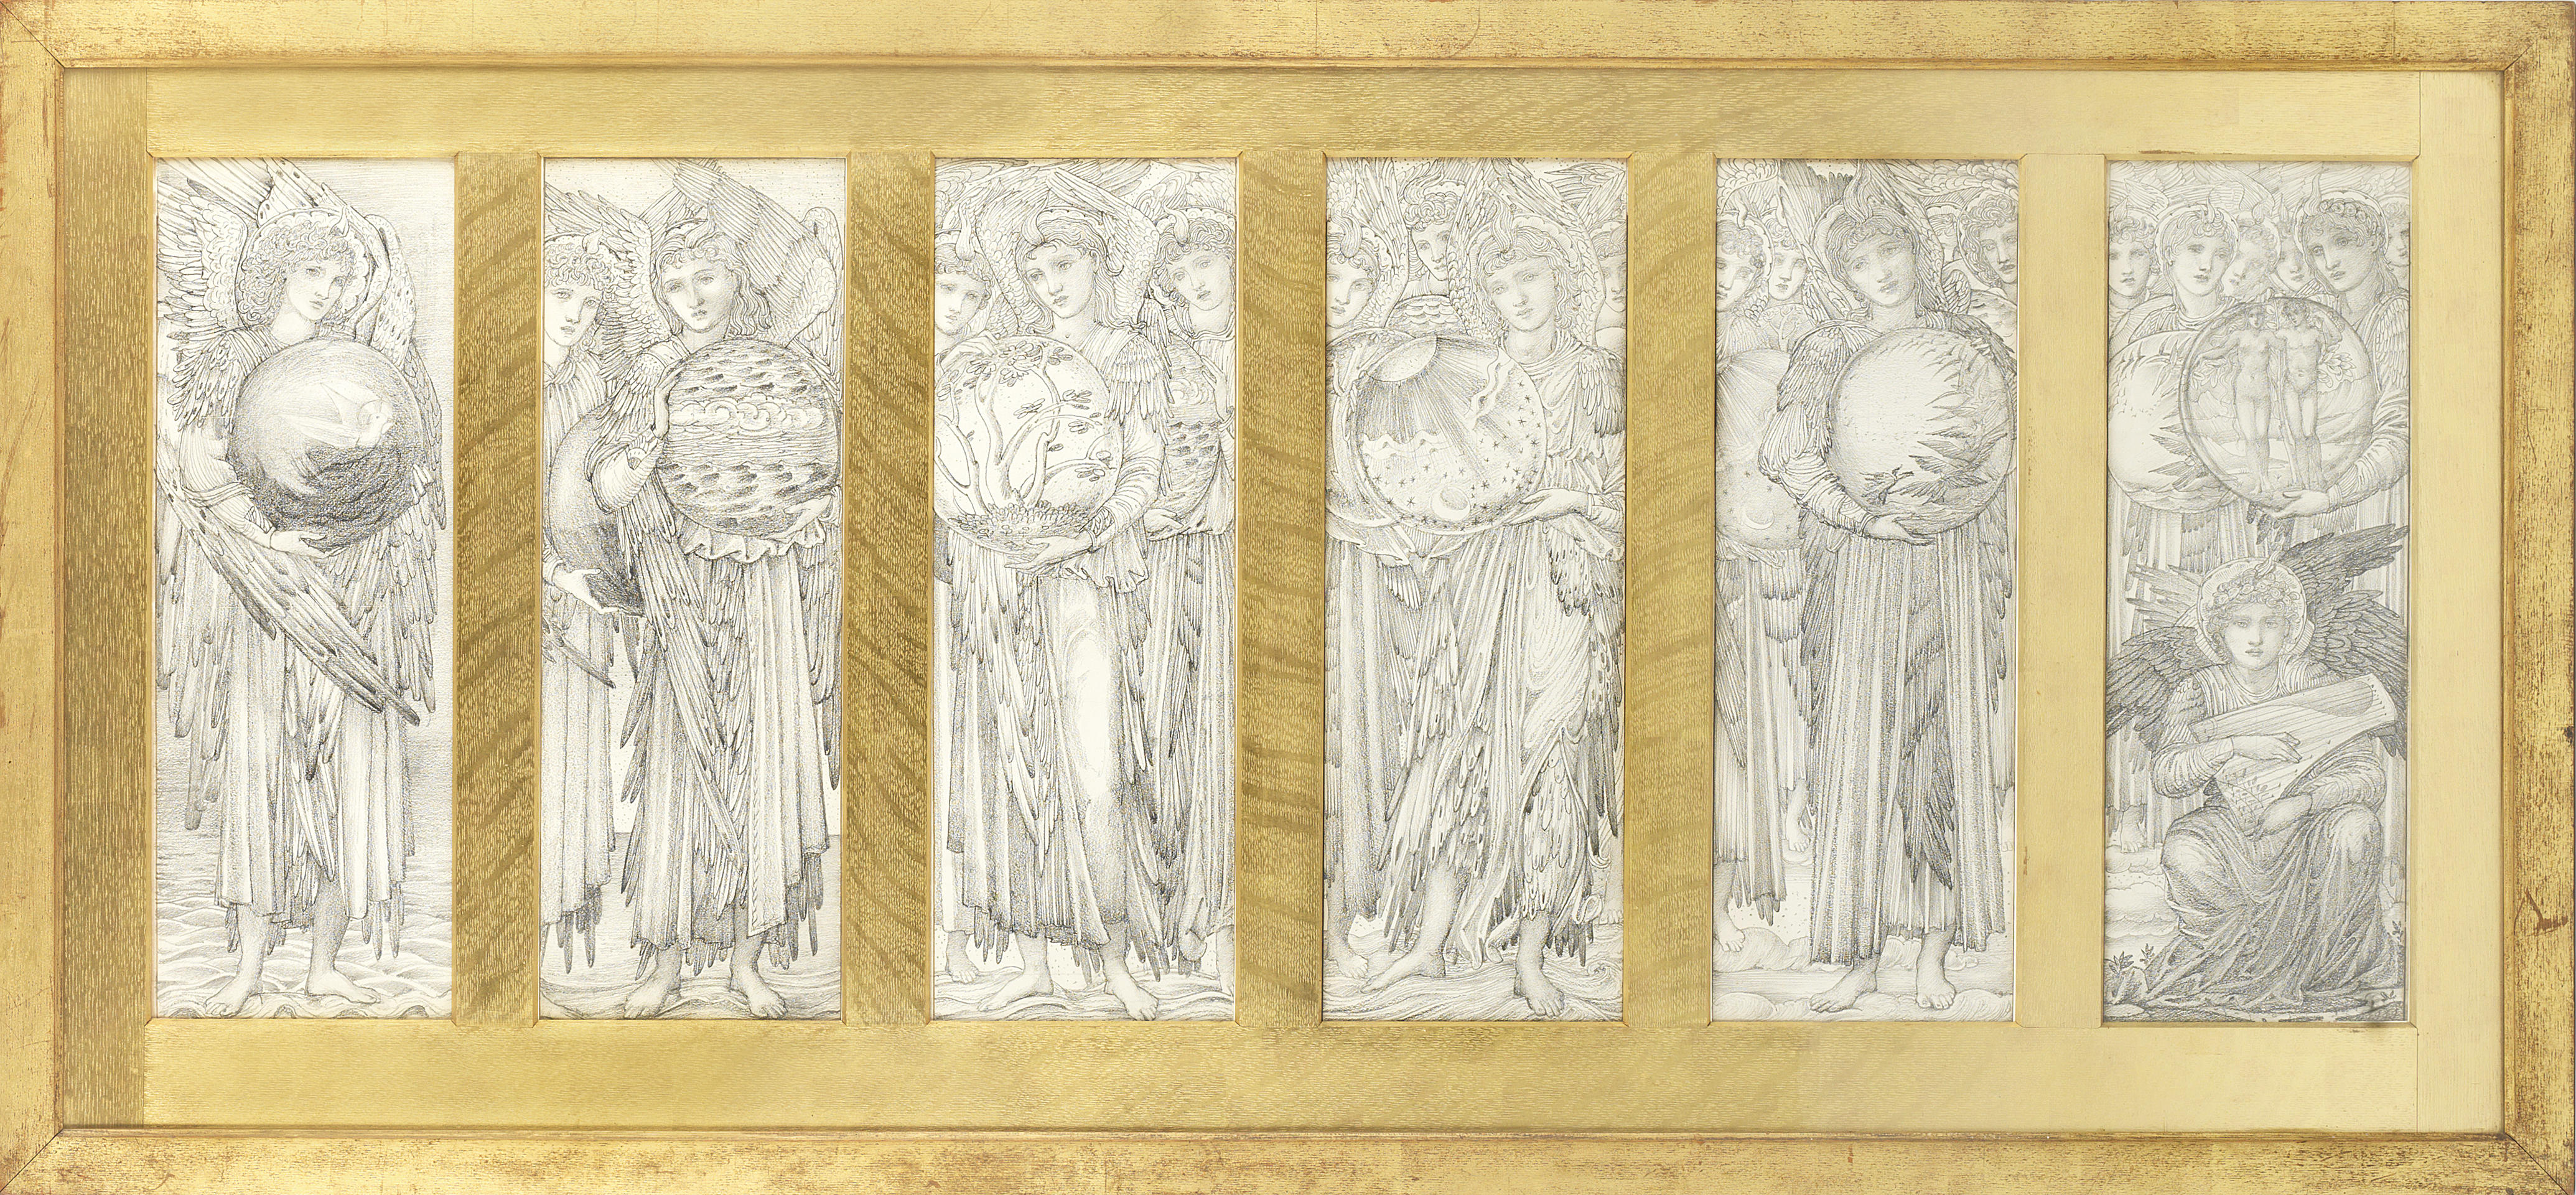 4140x1920 The History Blog Blog Archive Burne Jones' Days Of Creation